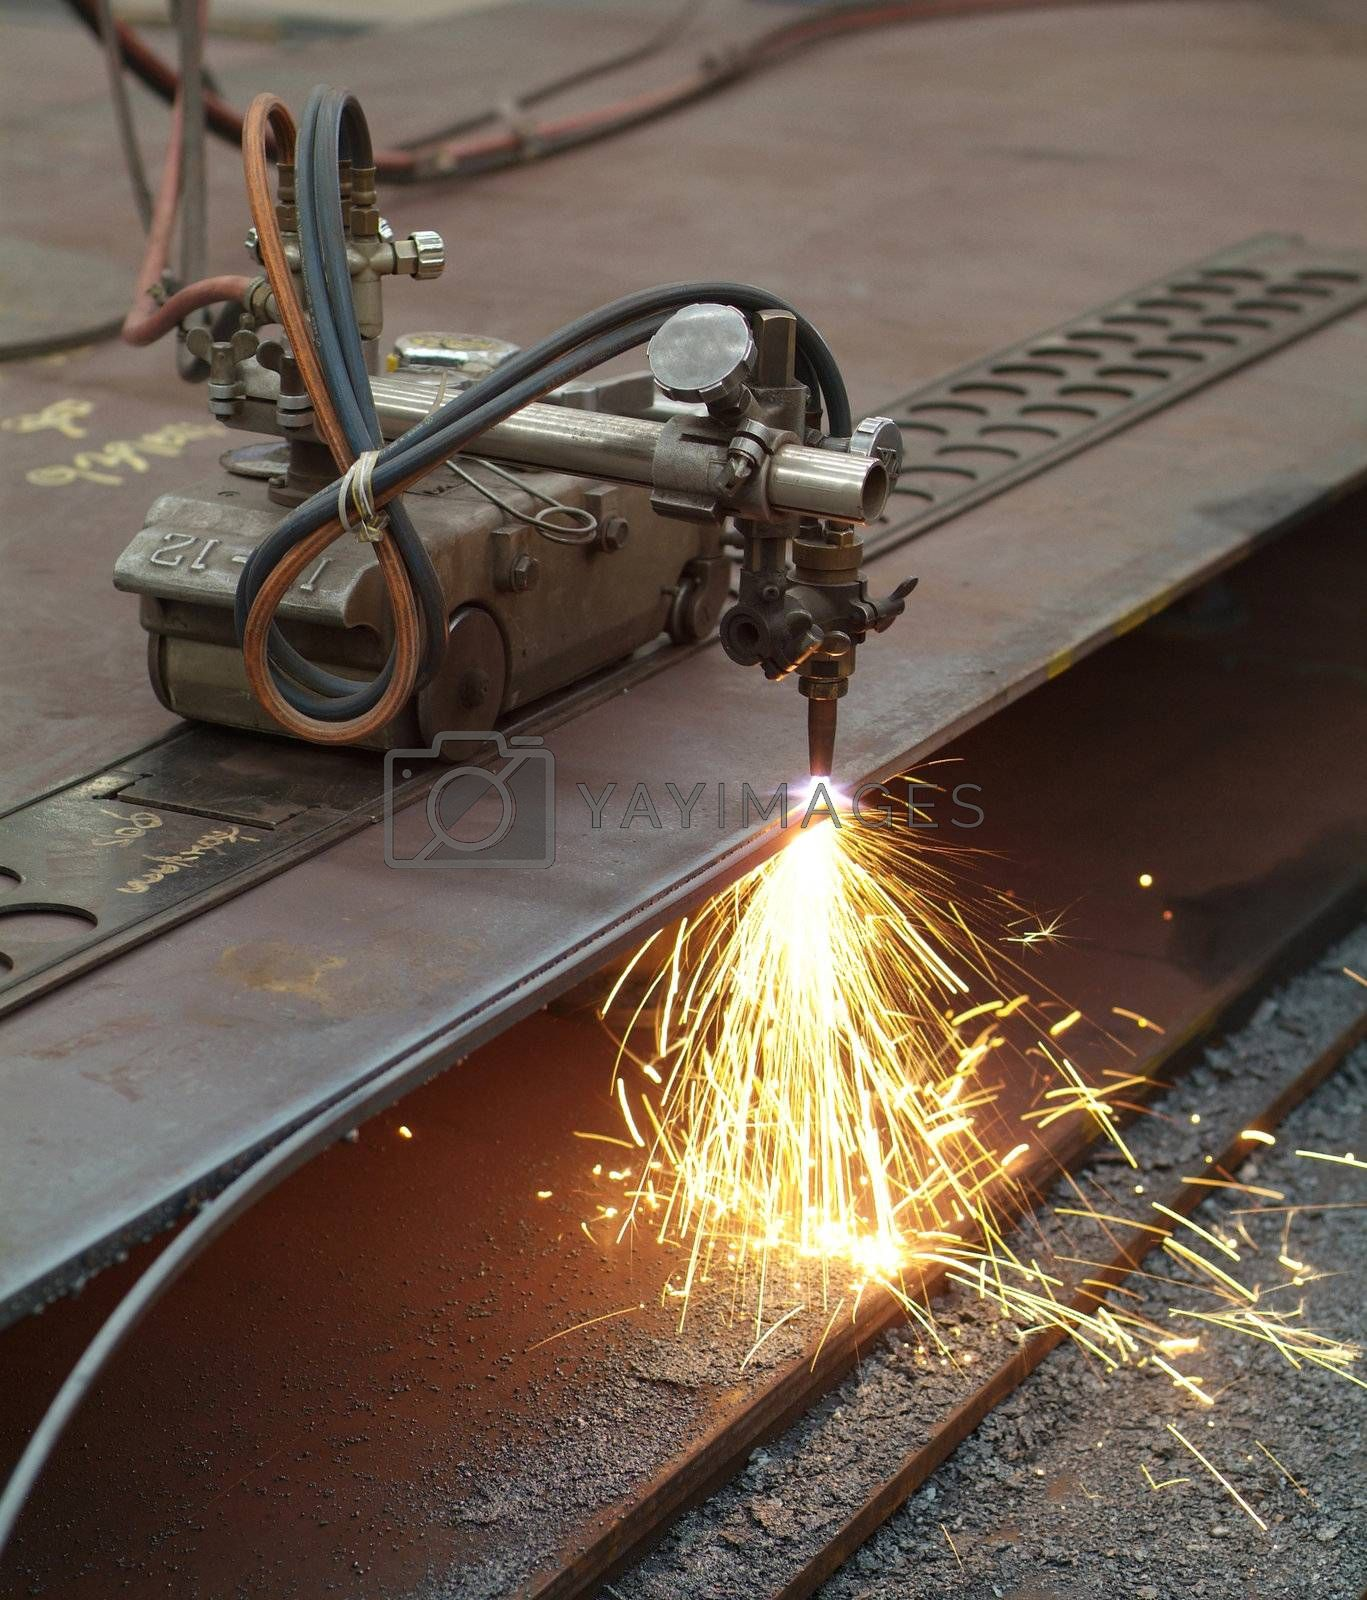 Royalty free image of Cutting of steel plates by epixx